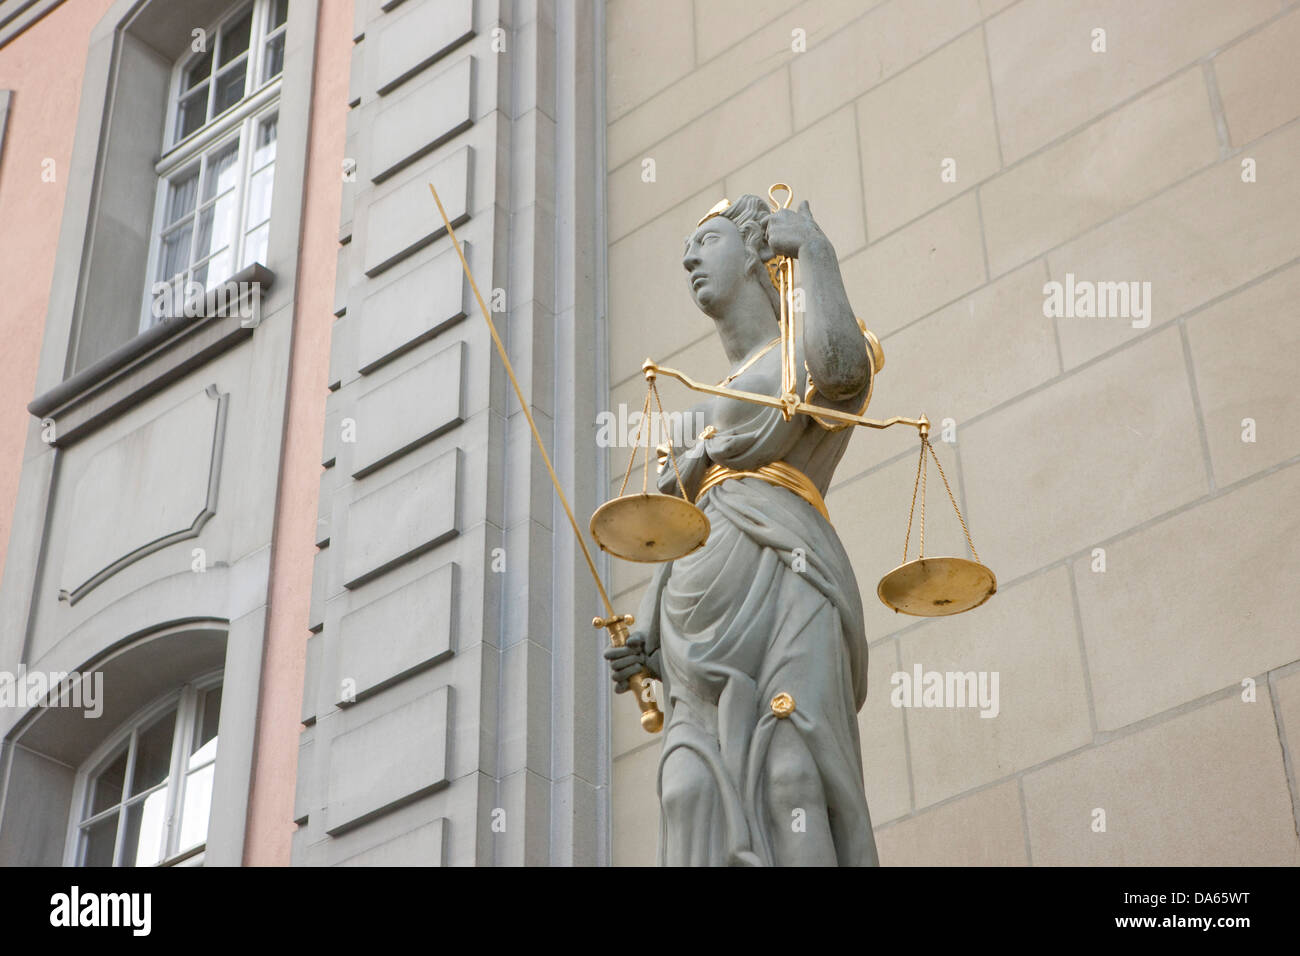 Justice, Zofingen, town, city, Kanton, AG, Aargau, justice, court, dish, Switzerland, Europe, law, - Stock Image